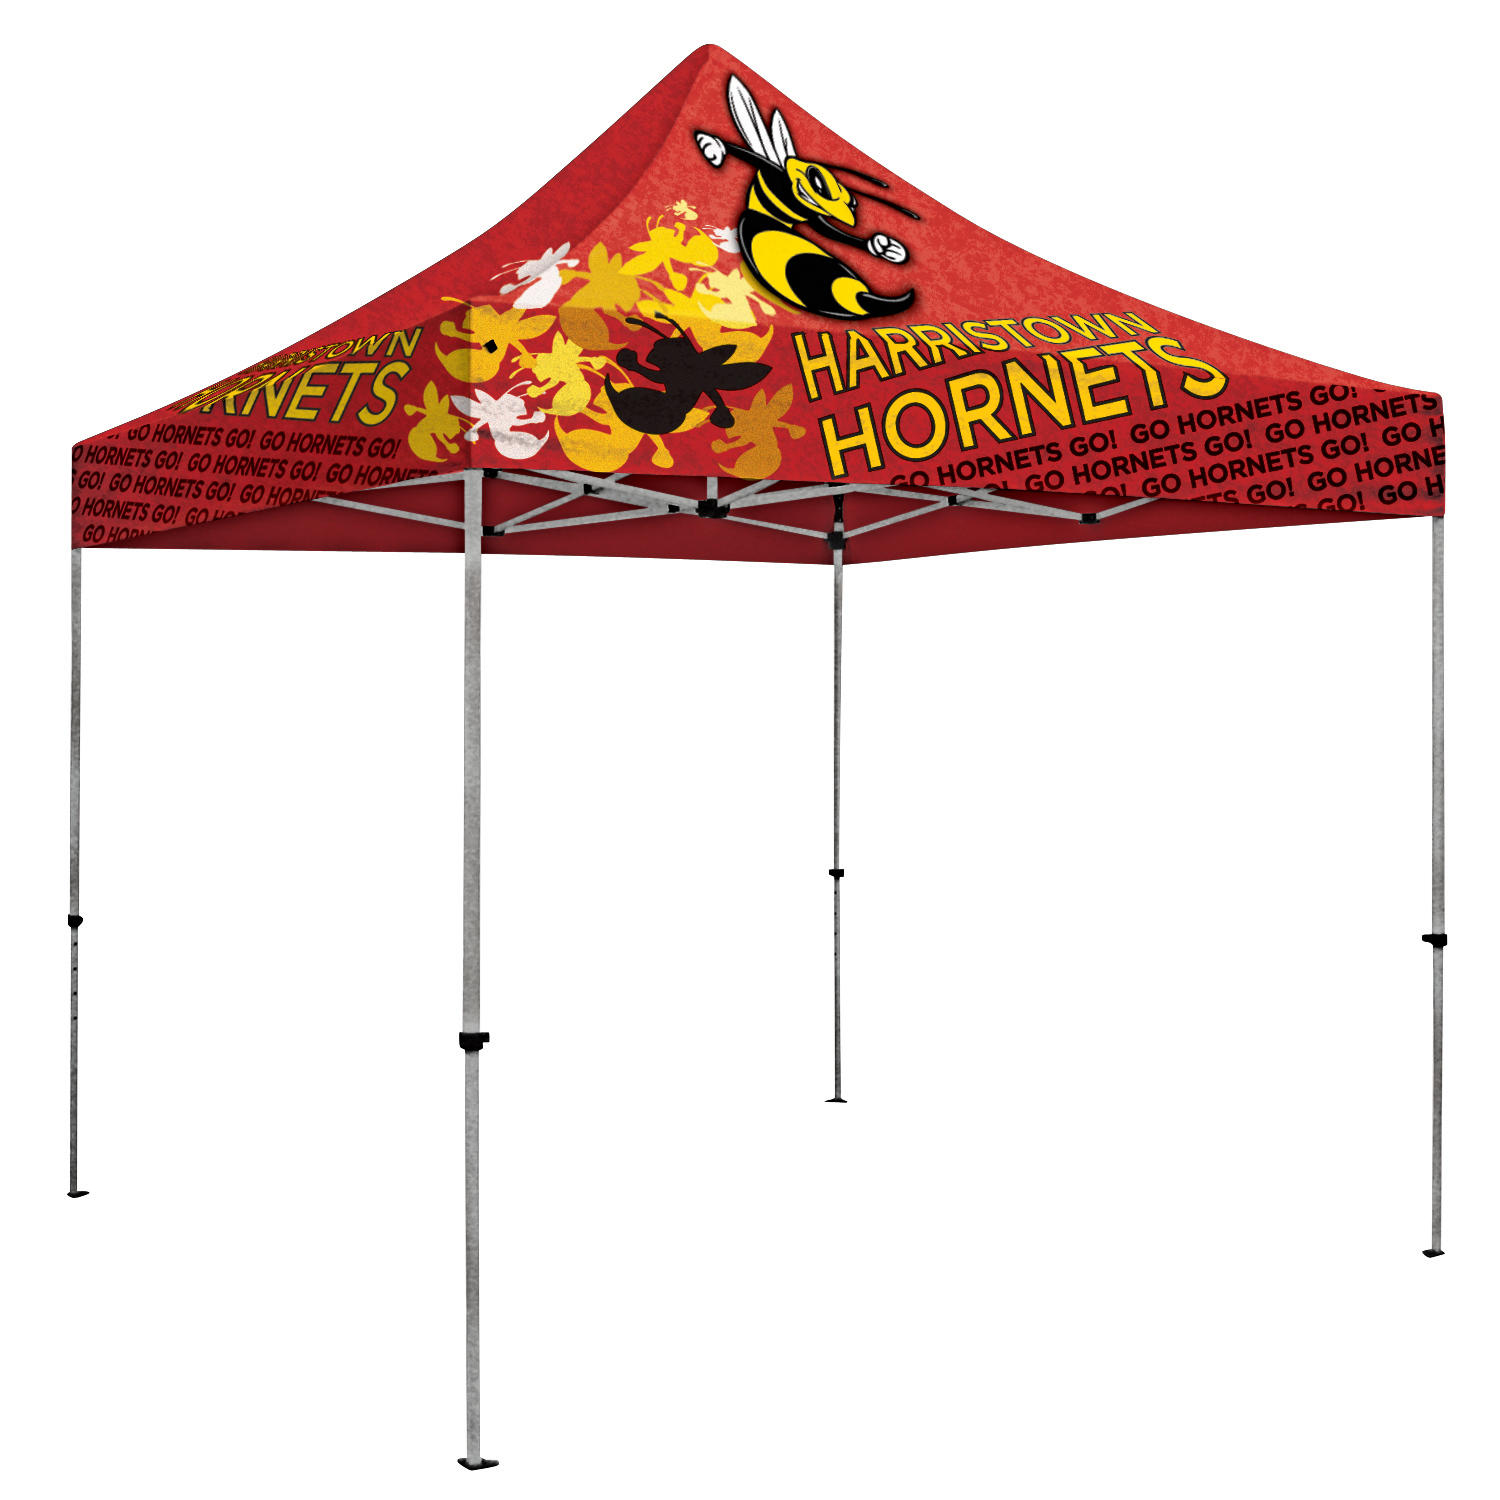 full-color-10ft-canopy-tent-kit-valance-local-display-outdoor-display-VA-DC-NY